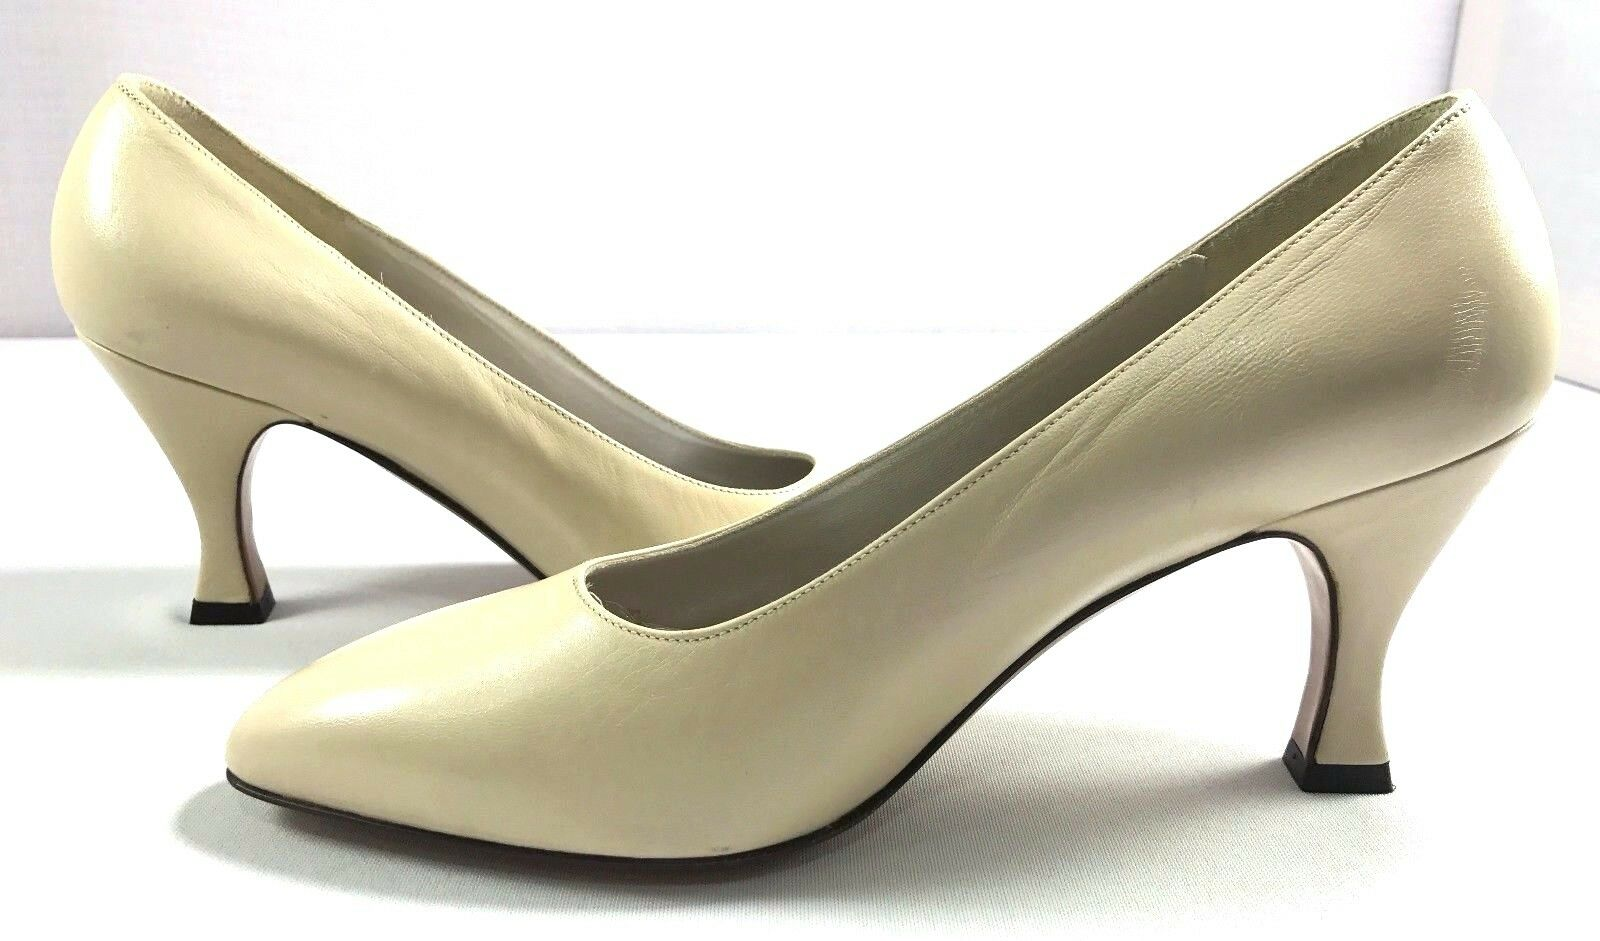 Bruno Magli Pumps damen Beige Leather Heels Größe 6.5 6.5 6.5 B Made in  d29a00